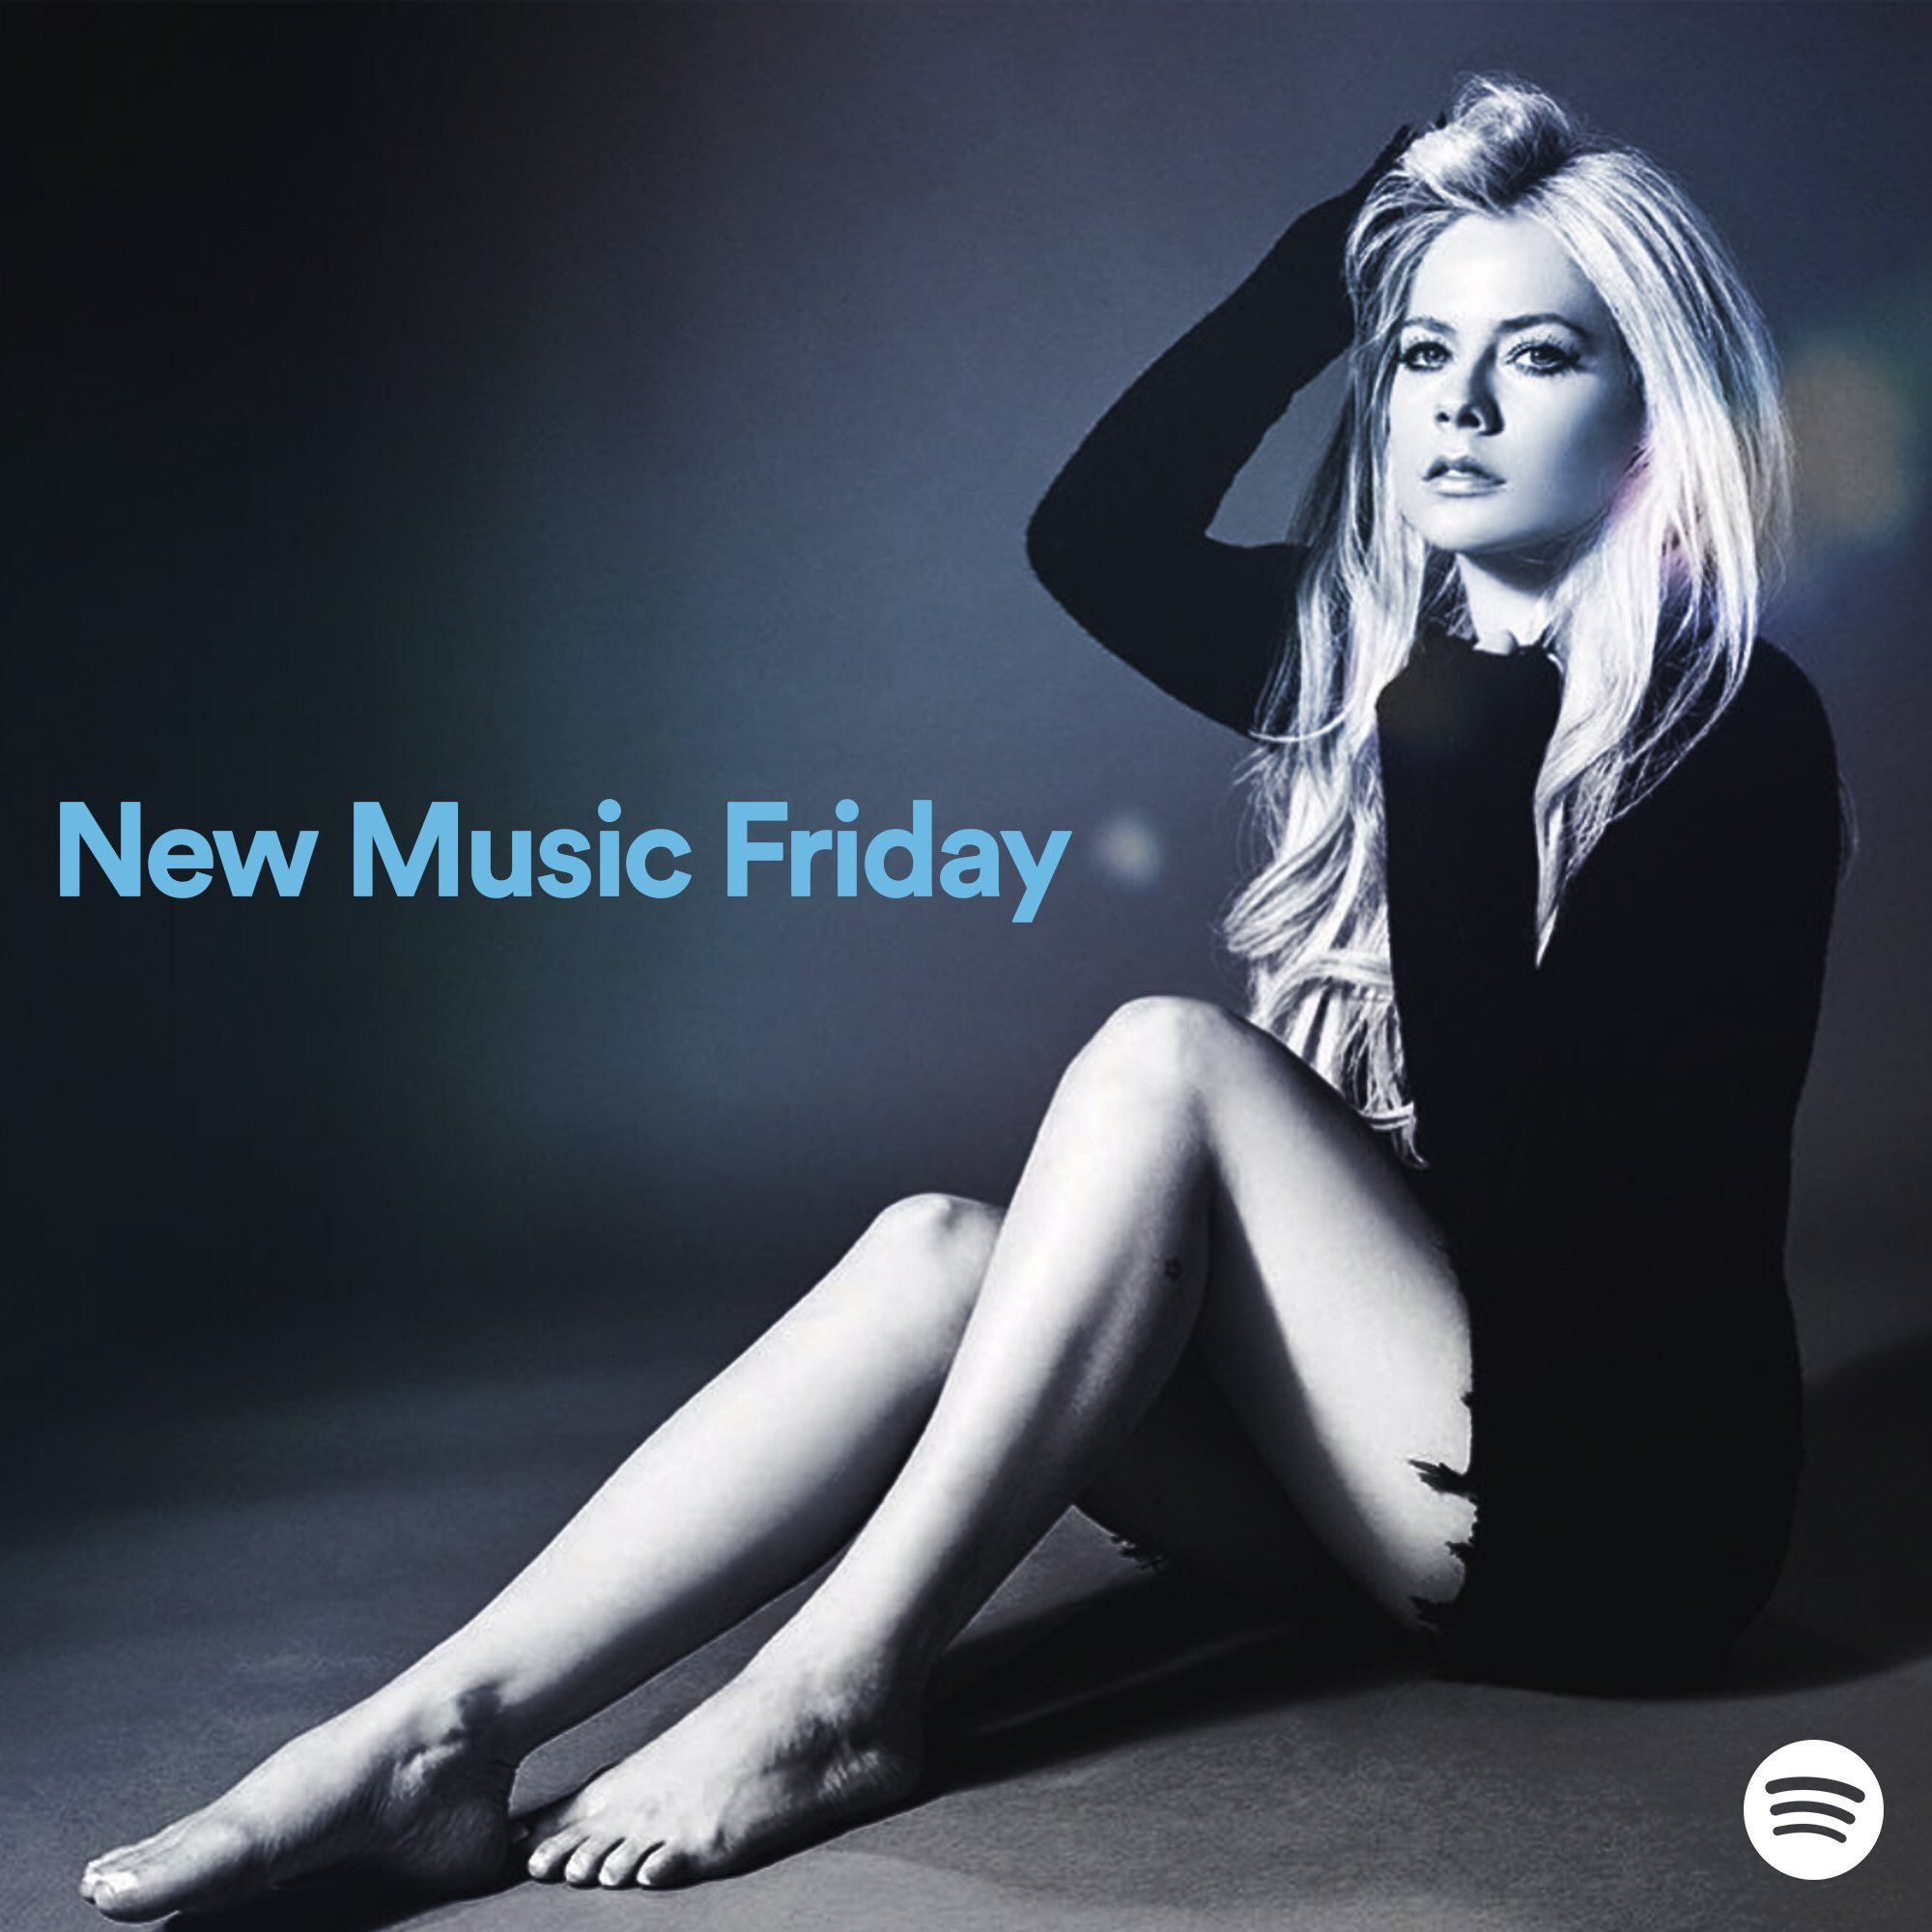 Thank you @Spotify for adding Head Above Water to #NewMusicFriday playlists in 23 countries!! https://t.co/FMOn4n5oYf